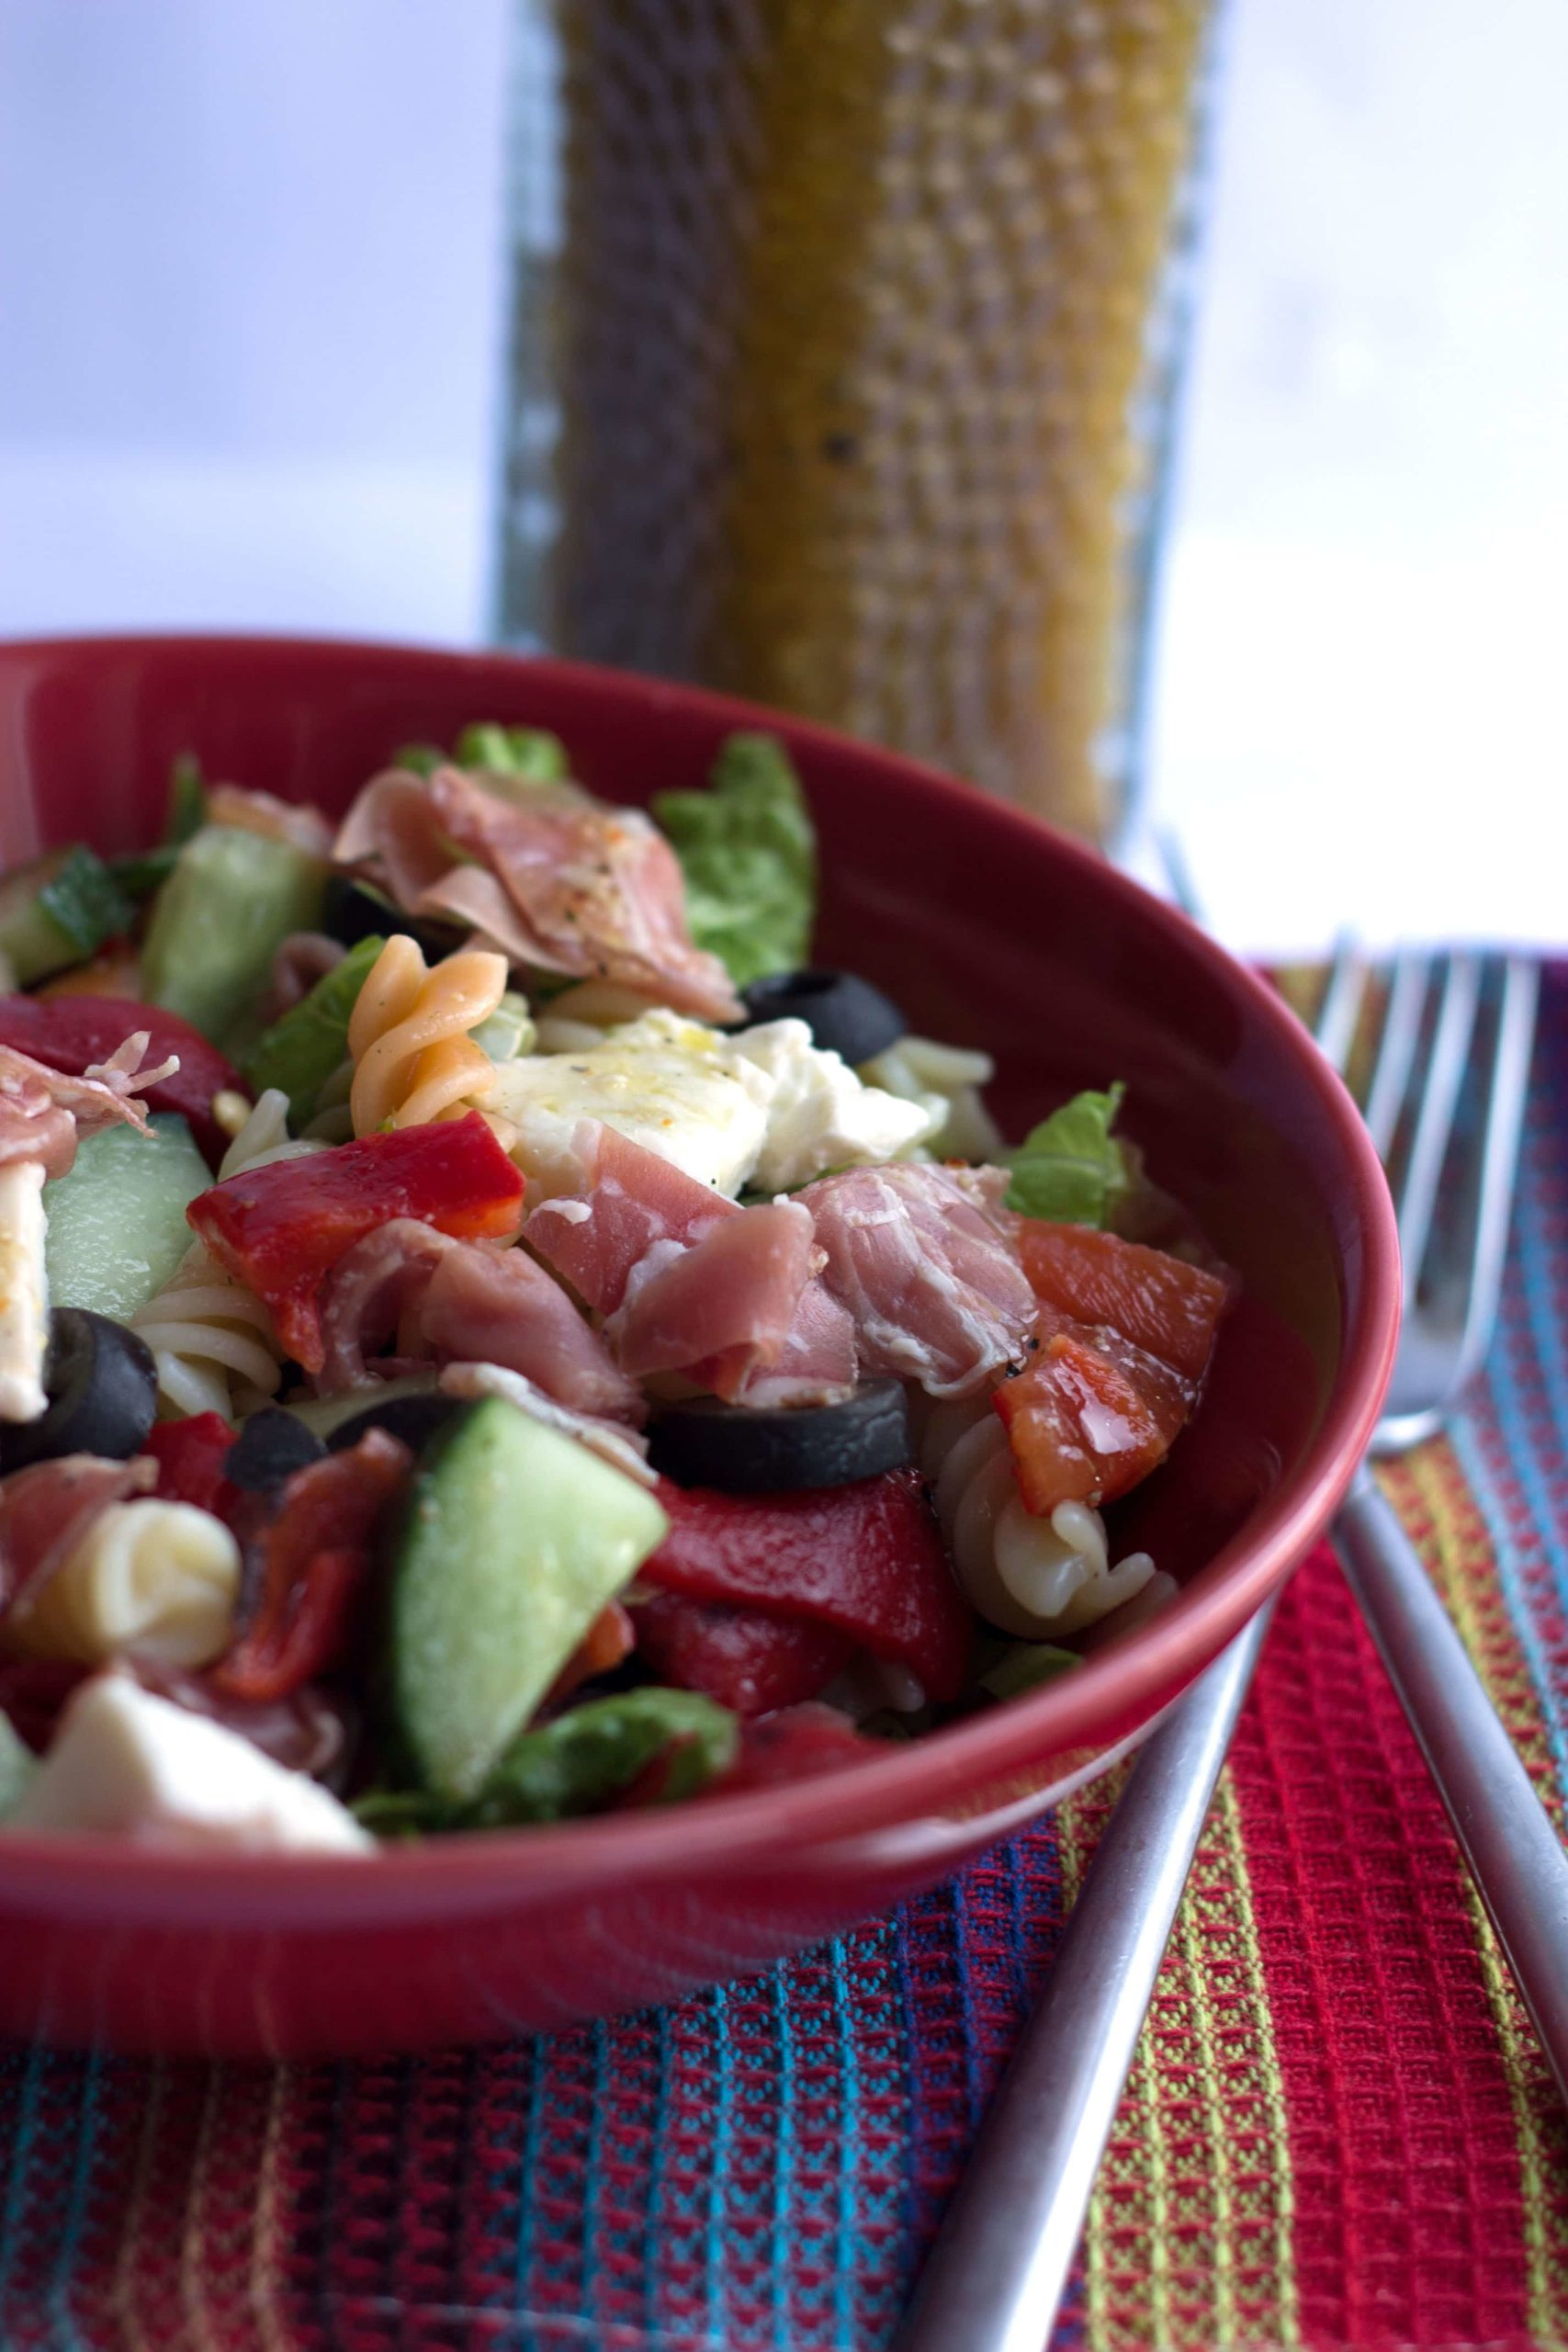 Antipasto Pasta Salad in a dark red bowl with forks next to it